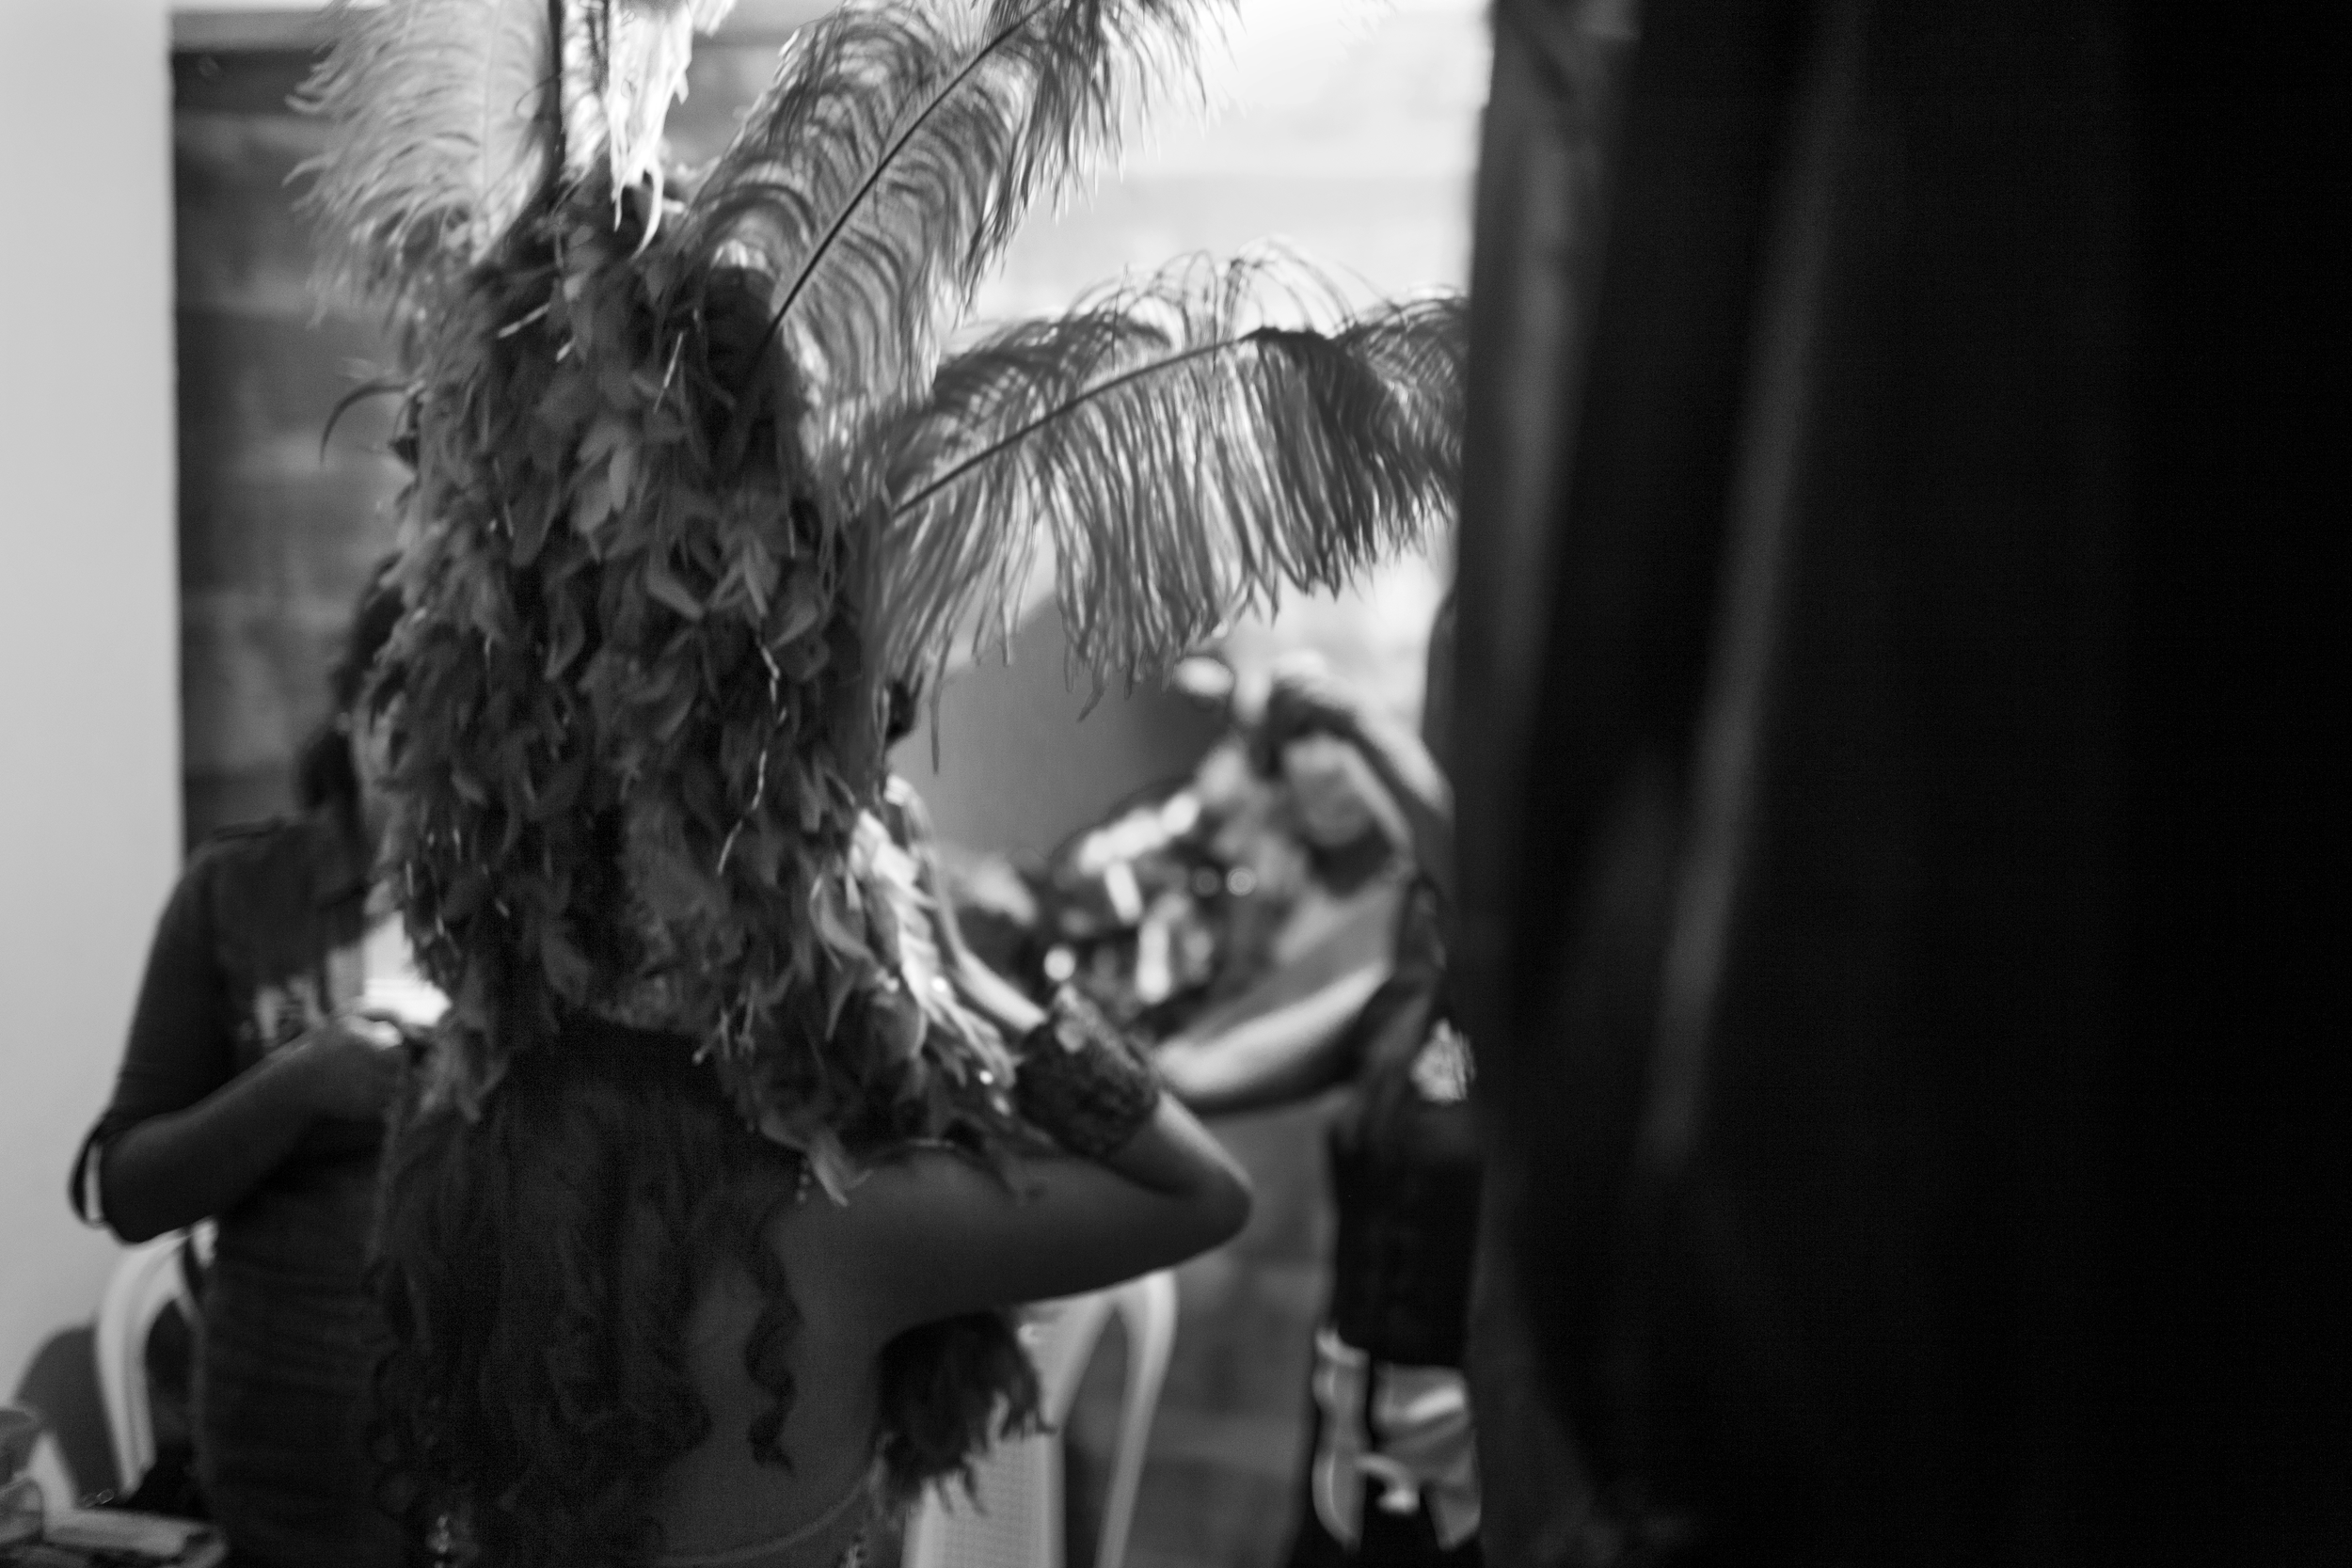 Patricia Vela prepares her outfit for the fantasy portion of the 2014 Miss Antigua beauty pageant. The winner will compete in the Miss Guatemala beauty pageant. Antigua, Guatemala.